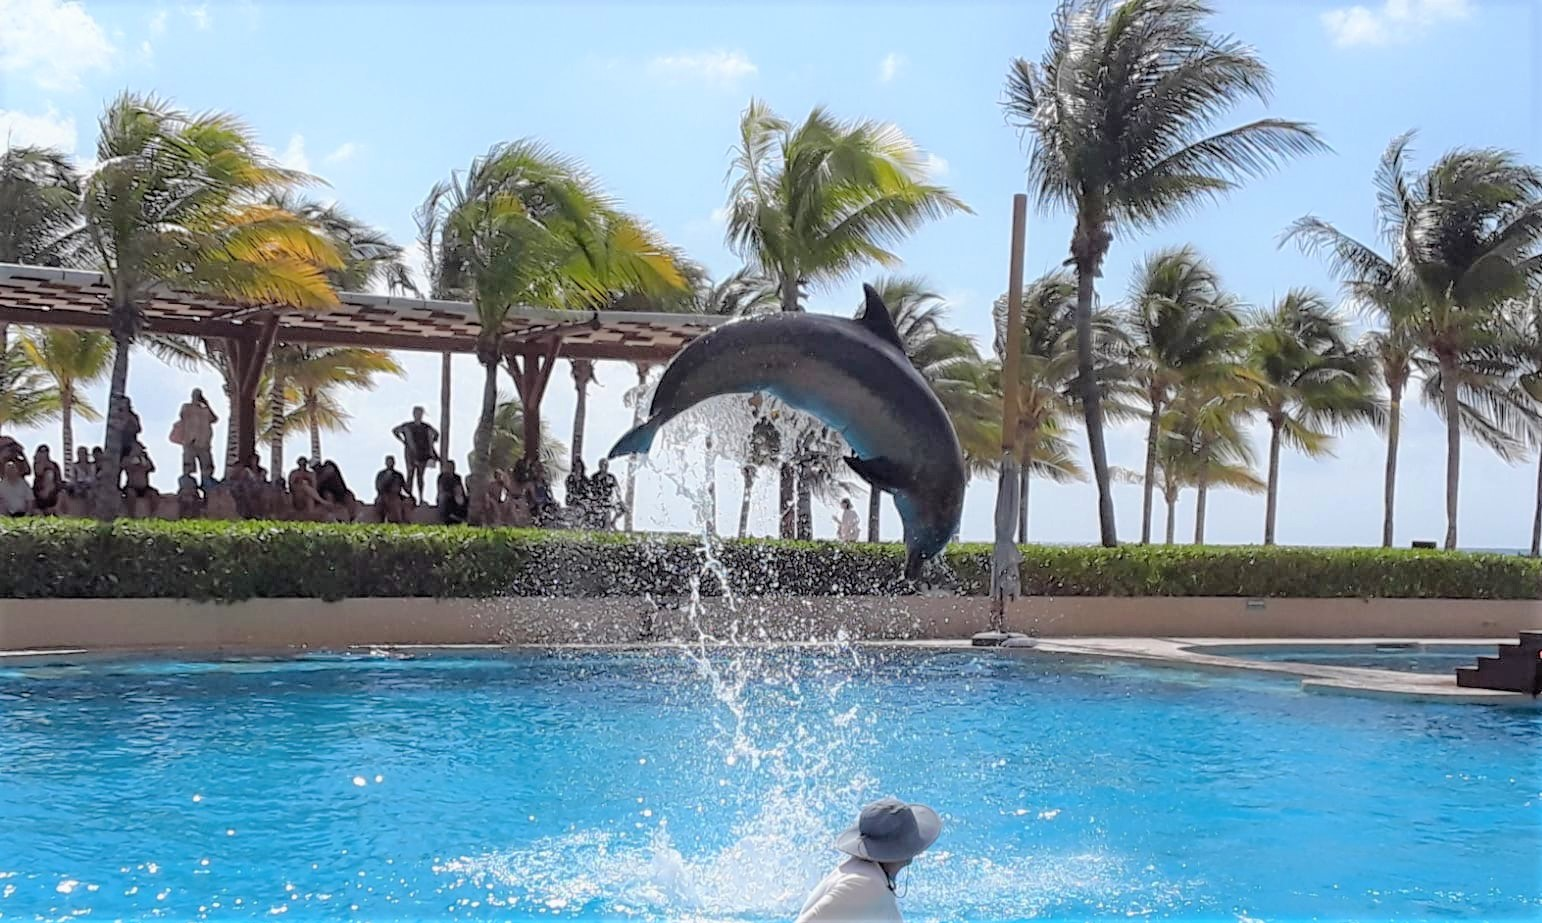 Dolphins in the pool -1